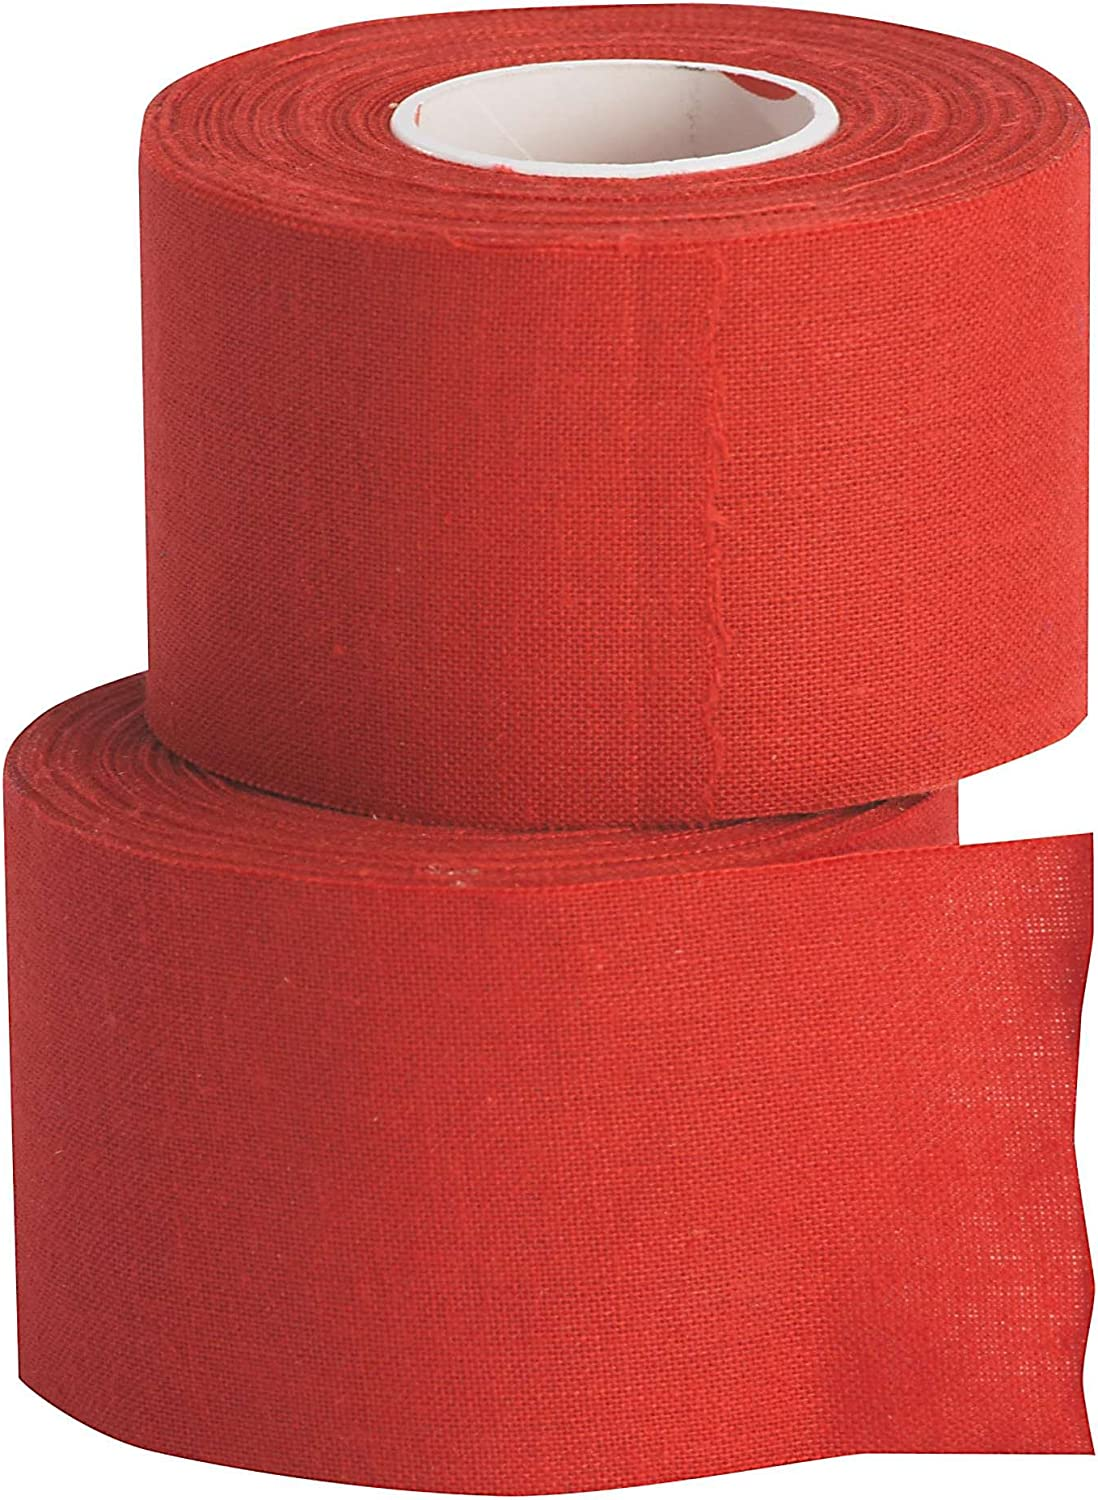 Cramer F Shrink 2 Super beauty product OFFicial mail order restock quality top Tape Pack